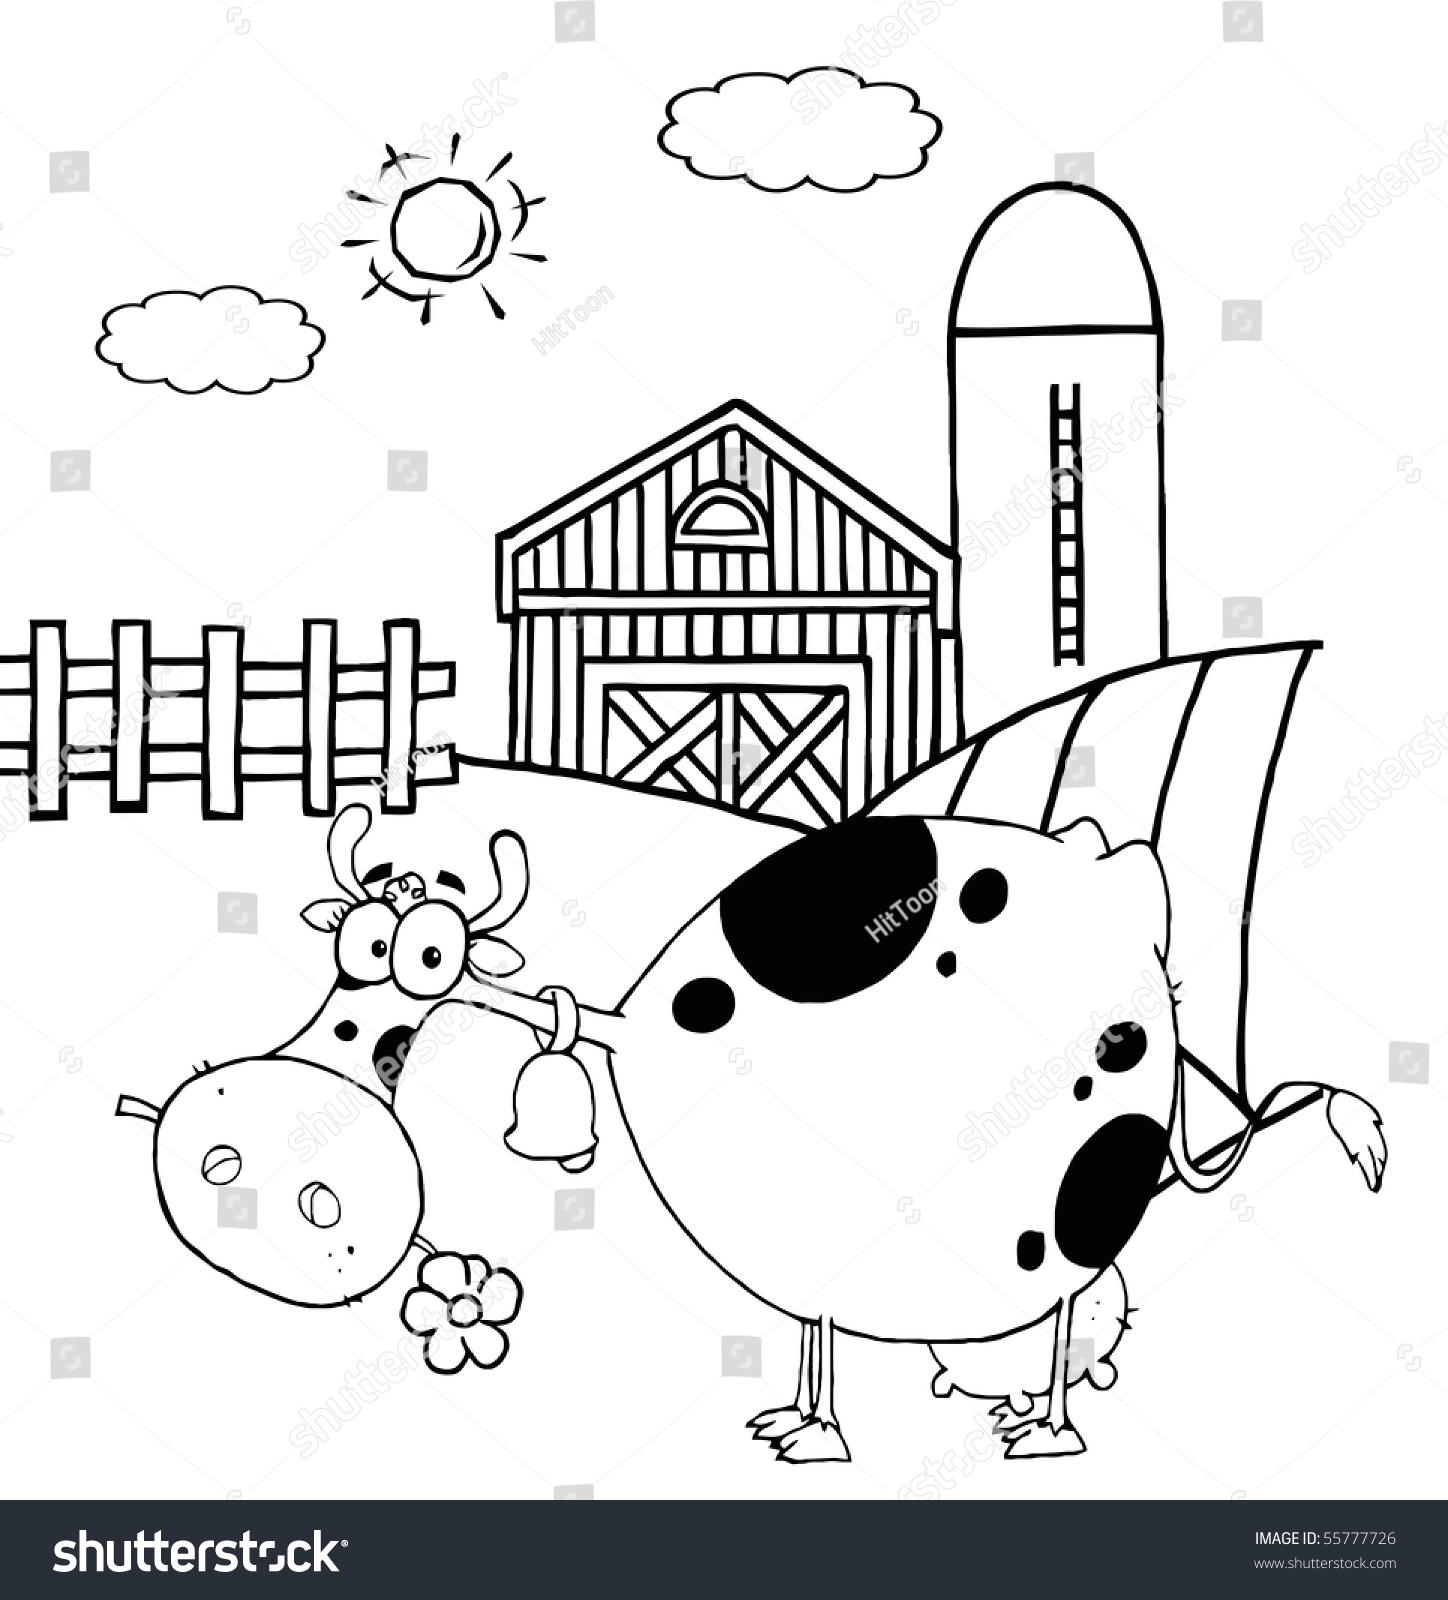 outlined spotted cow eating a daisy near a barn and silo stock ... - Barns Coloring Pages Farm Silos